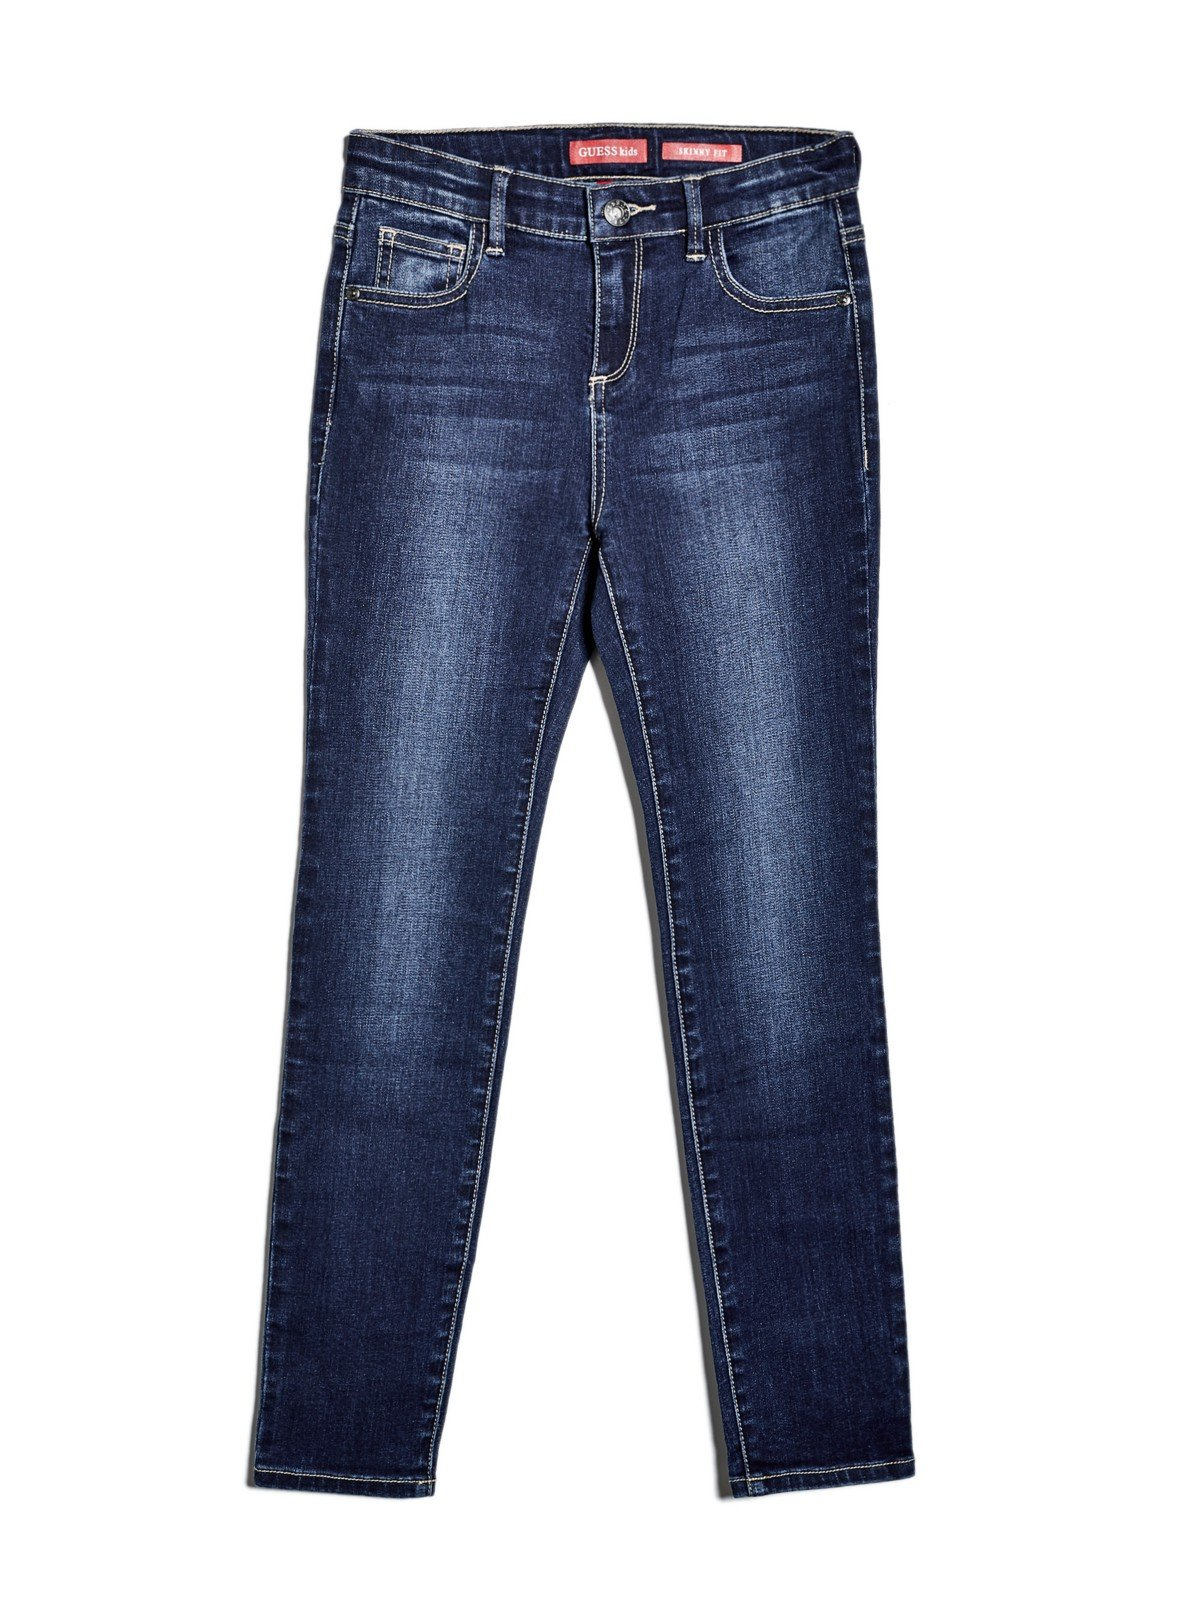 GUESS Factory Cammie High-Rise Skinny Jeans (7-16)